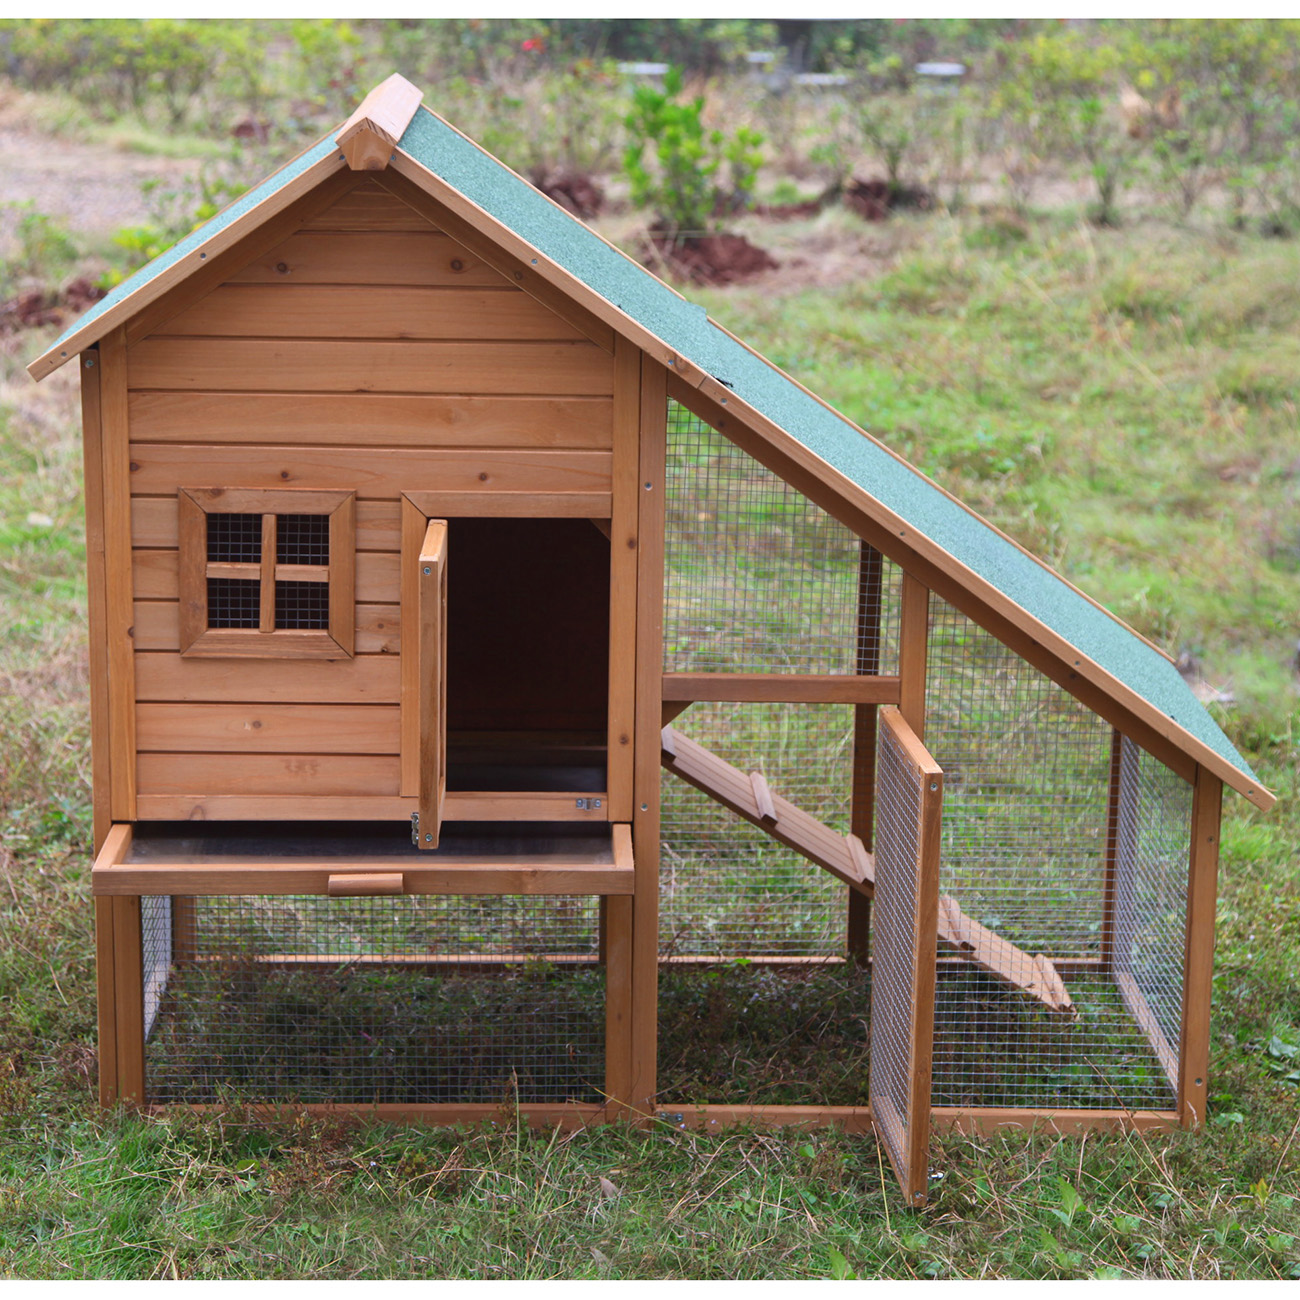 55 portable wooden rabbit hutch deluxe hen house chicken for Small portable chicken coop